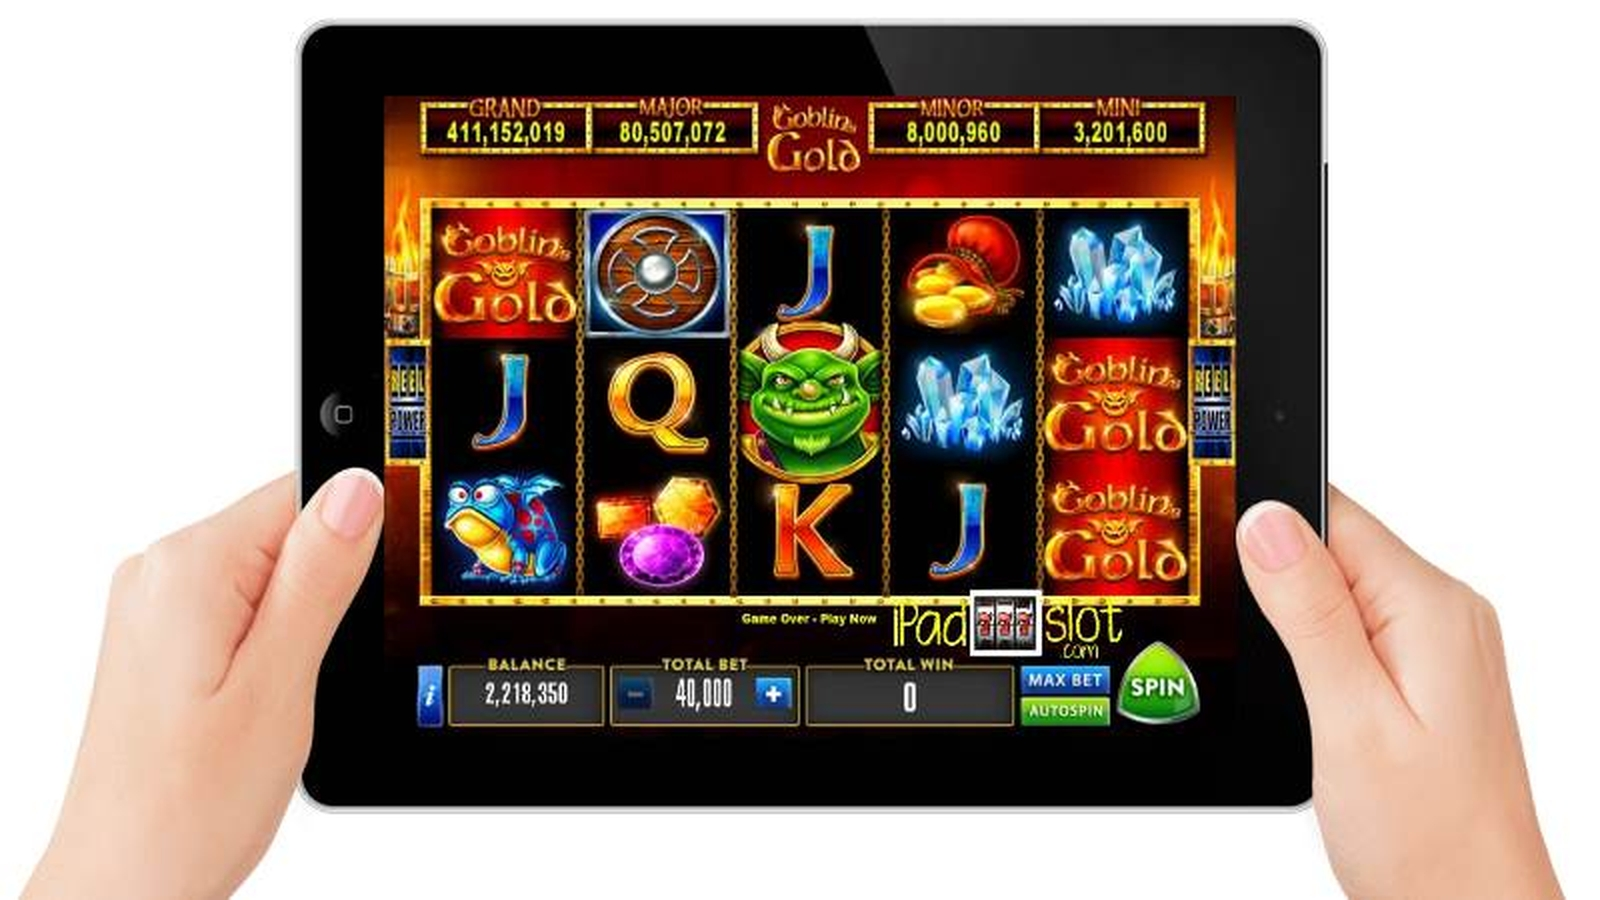 The Goblins Gold (Aristocrat) Online Slot Demo Game by Aristocrat